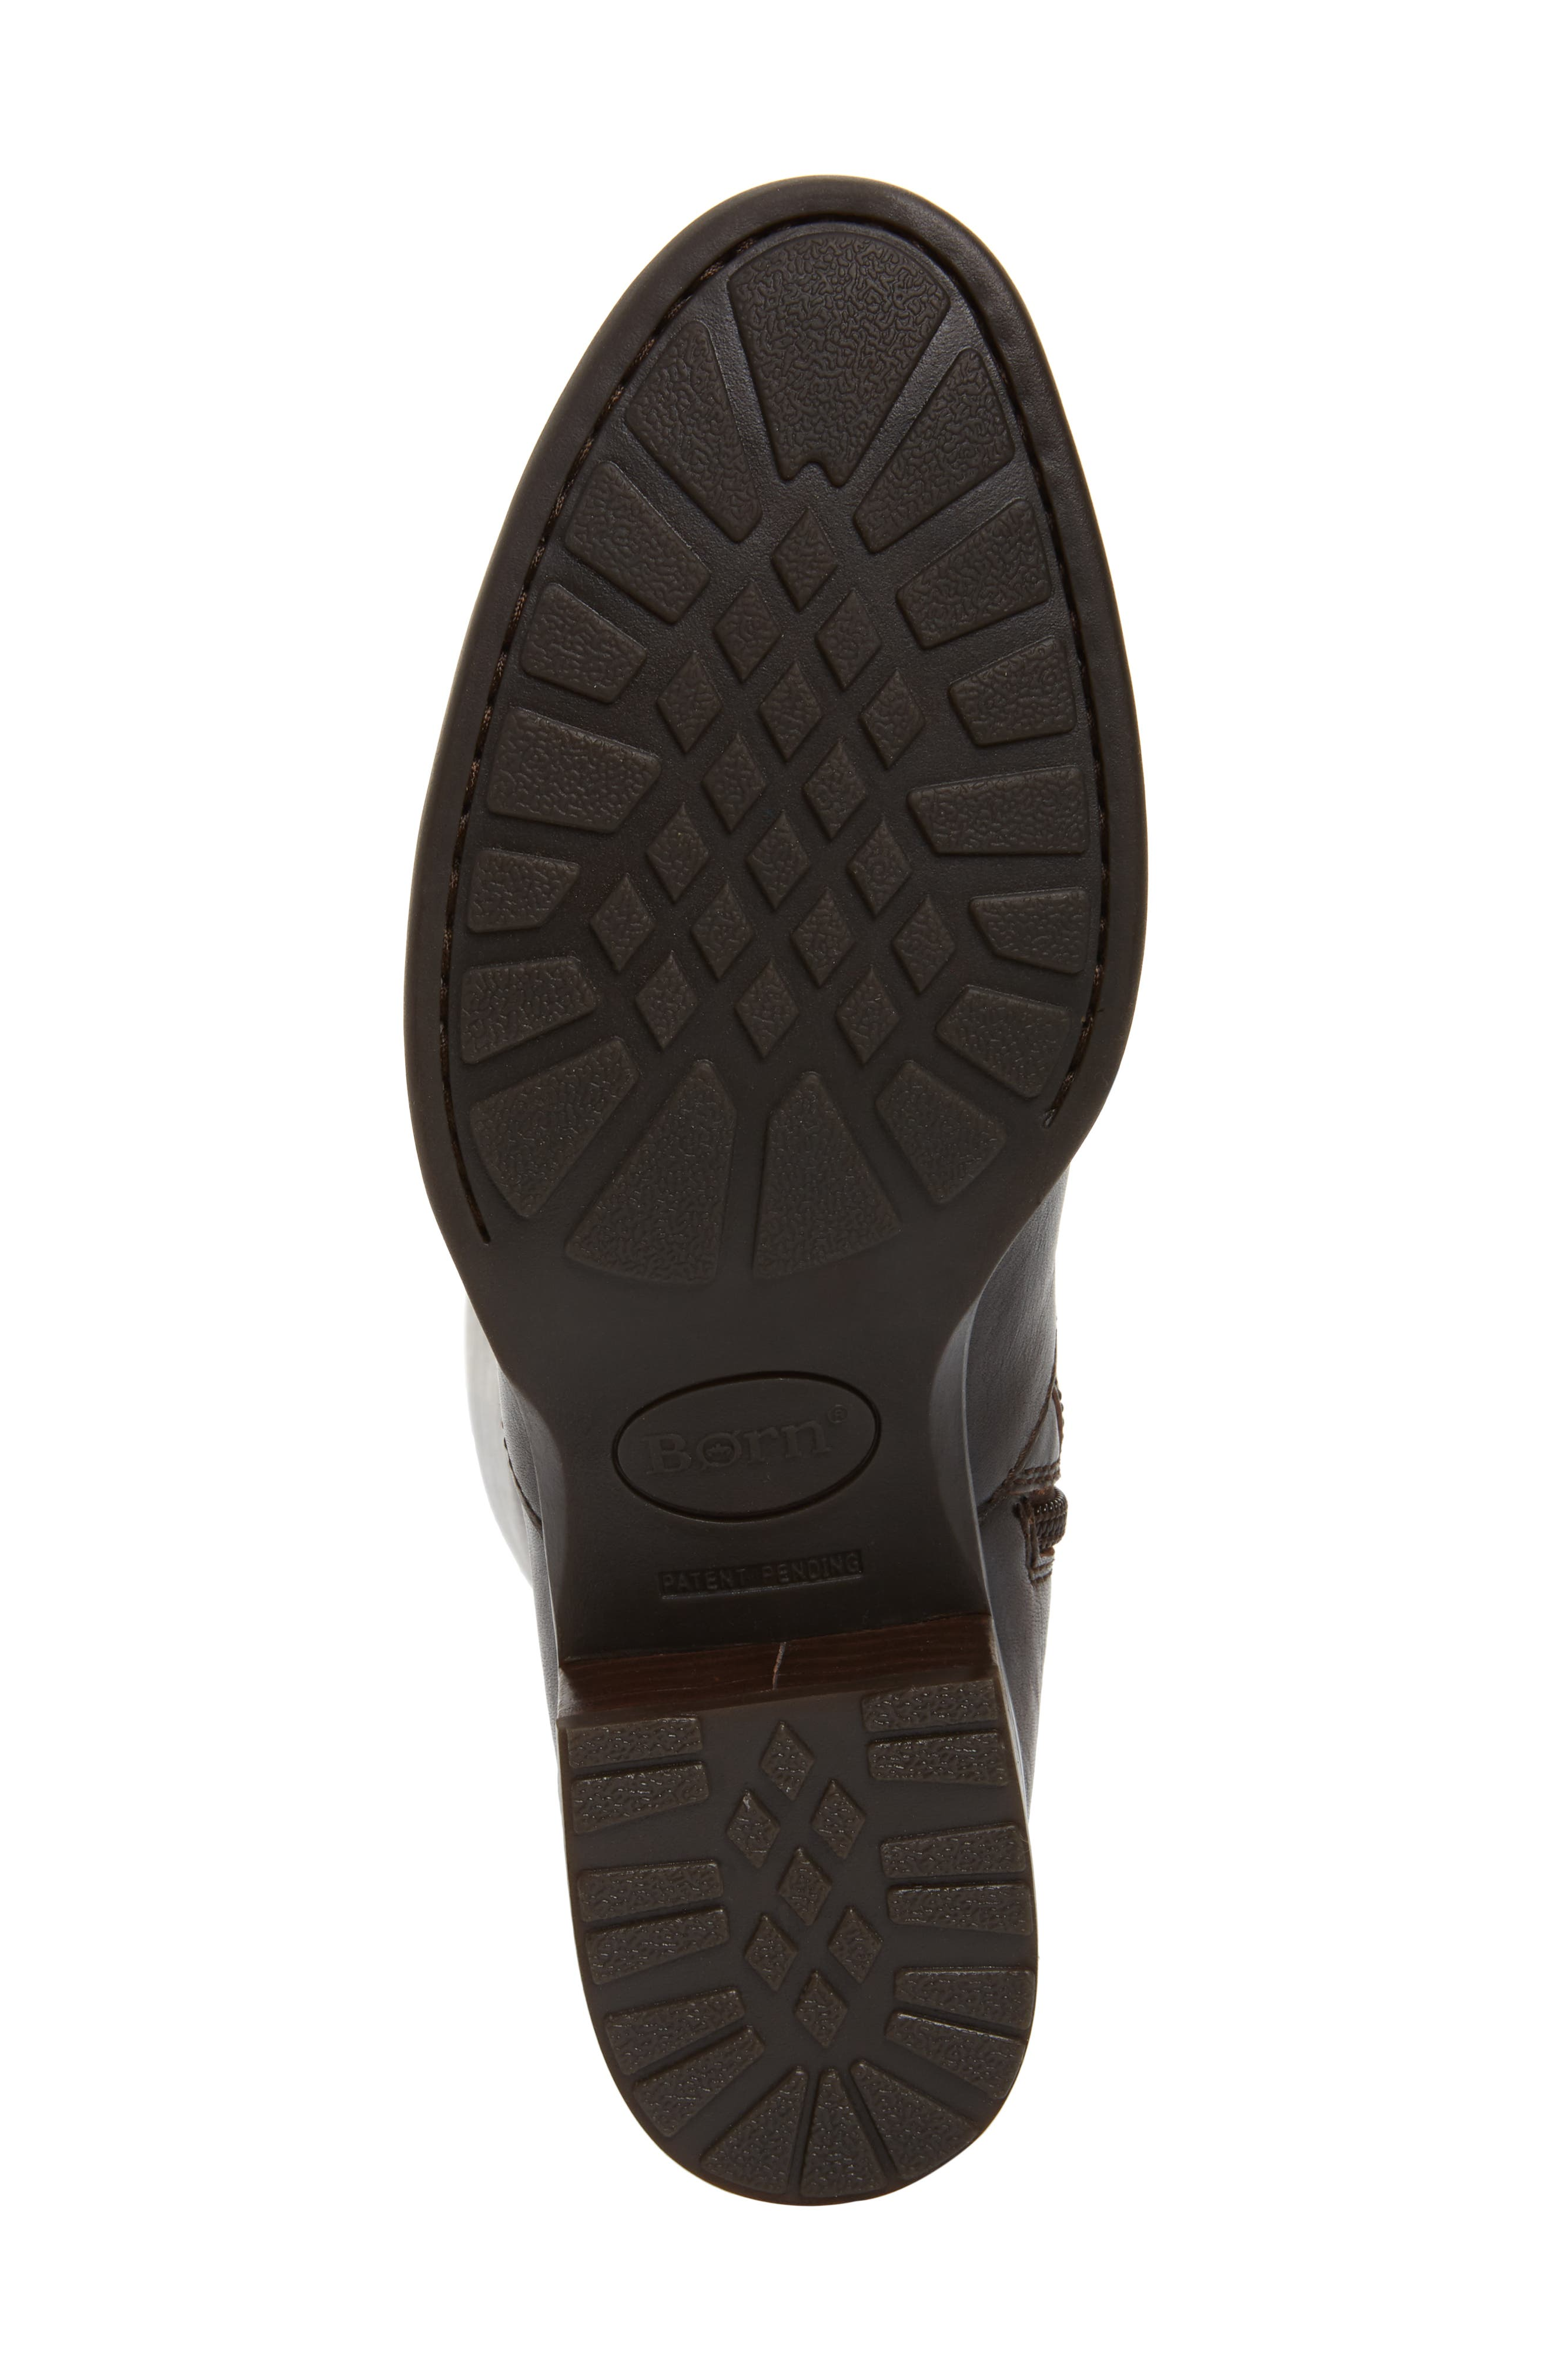 Cupra Tall Boot,                             Alternate thumbnail 6, color,                             Brown Leather